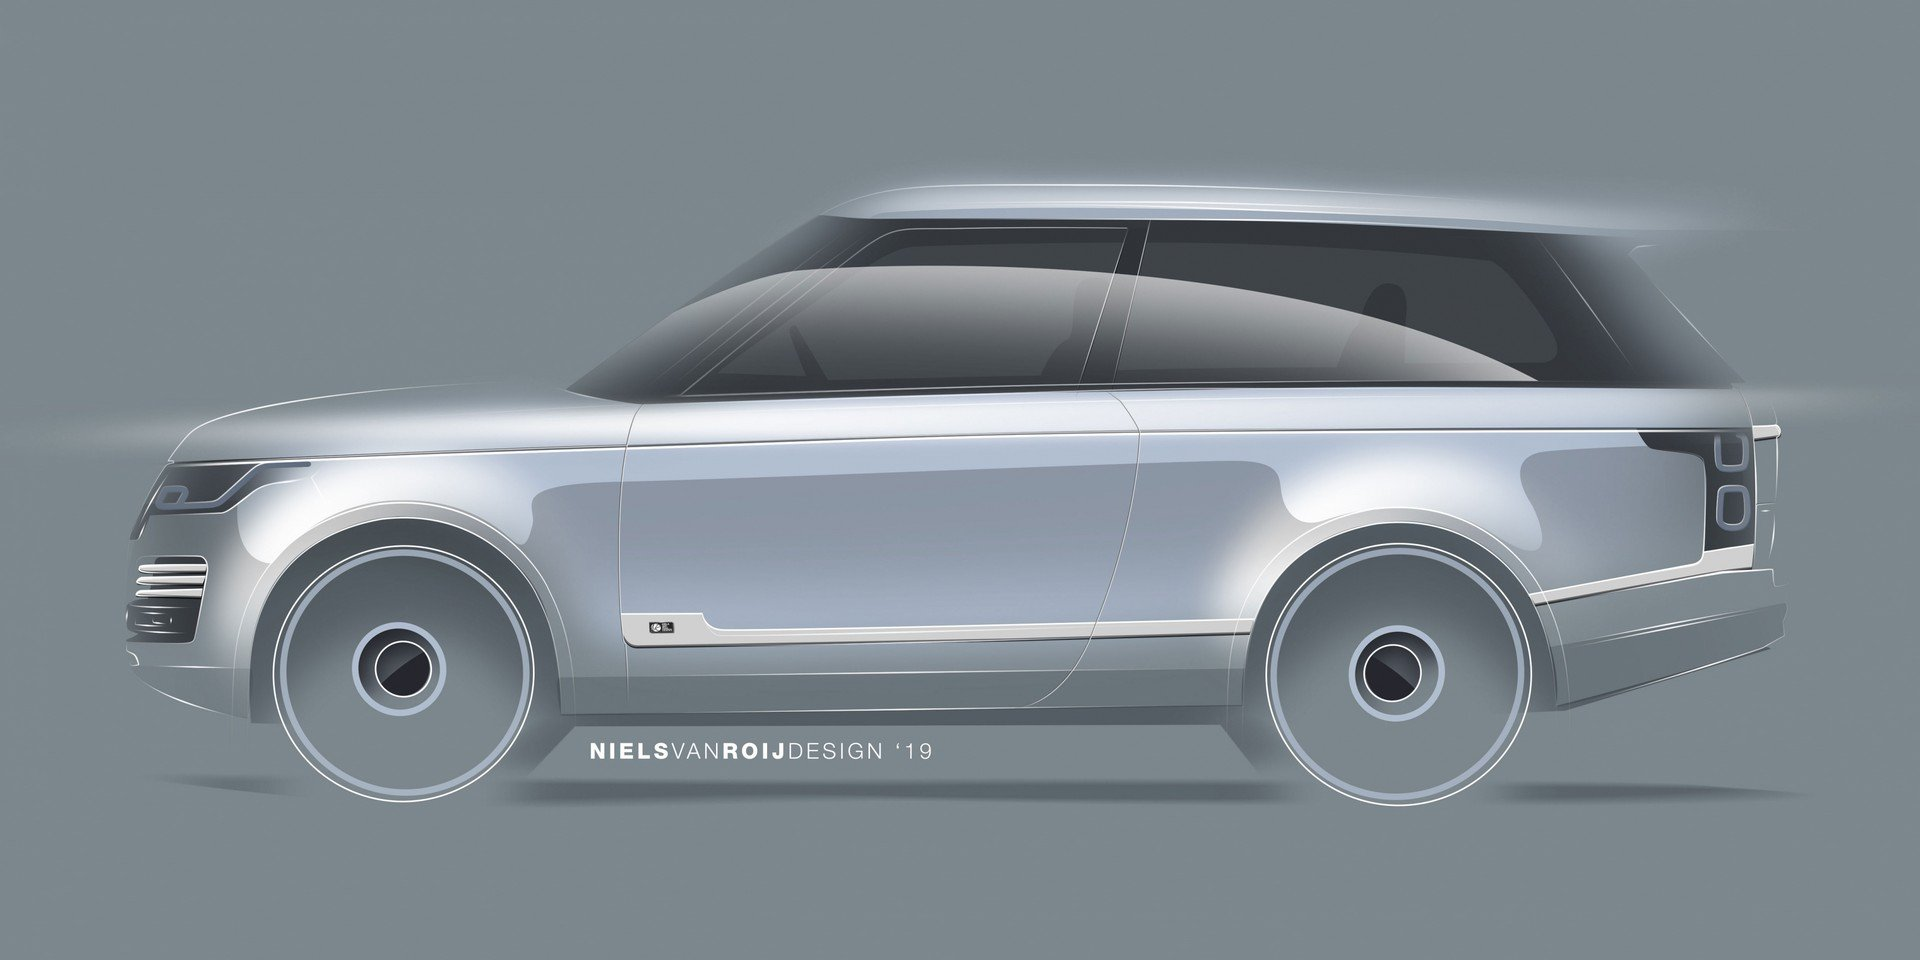 London-based firm Niels van Roij Design has revealed its plans to release the Adventum Coupe, a limited car series based on the two-door Range Rover